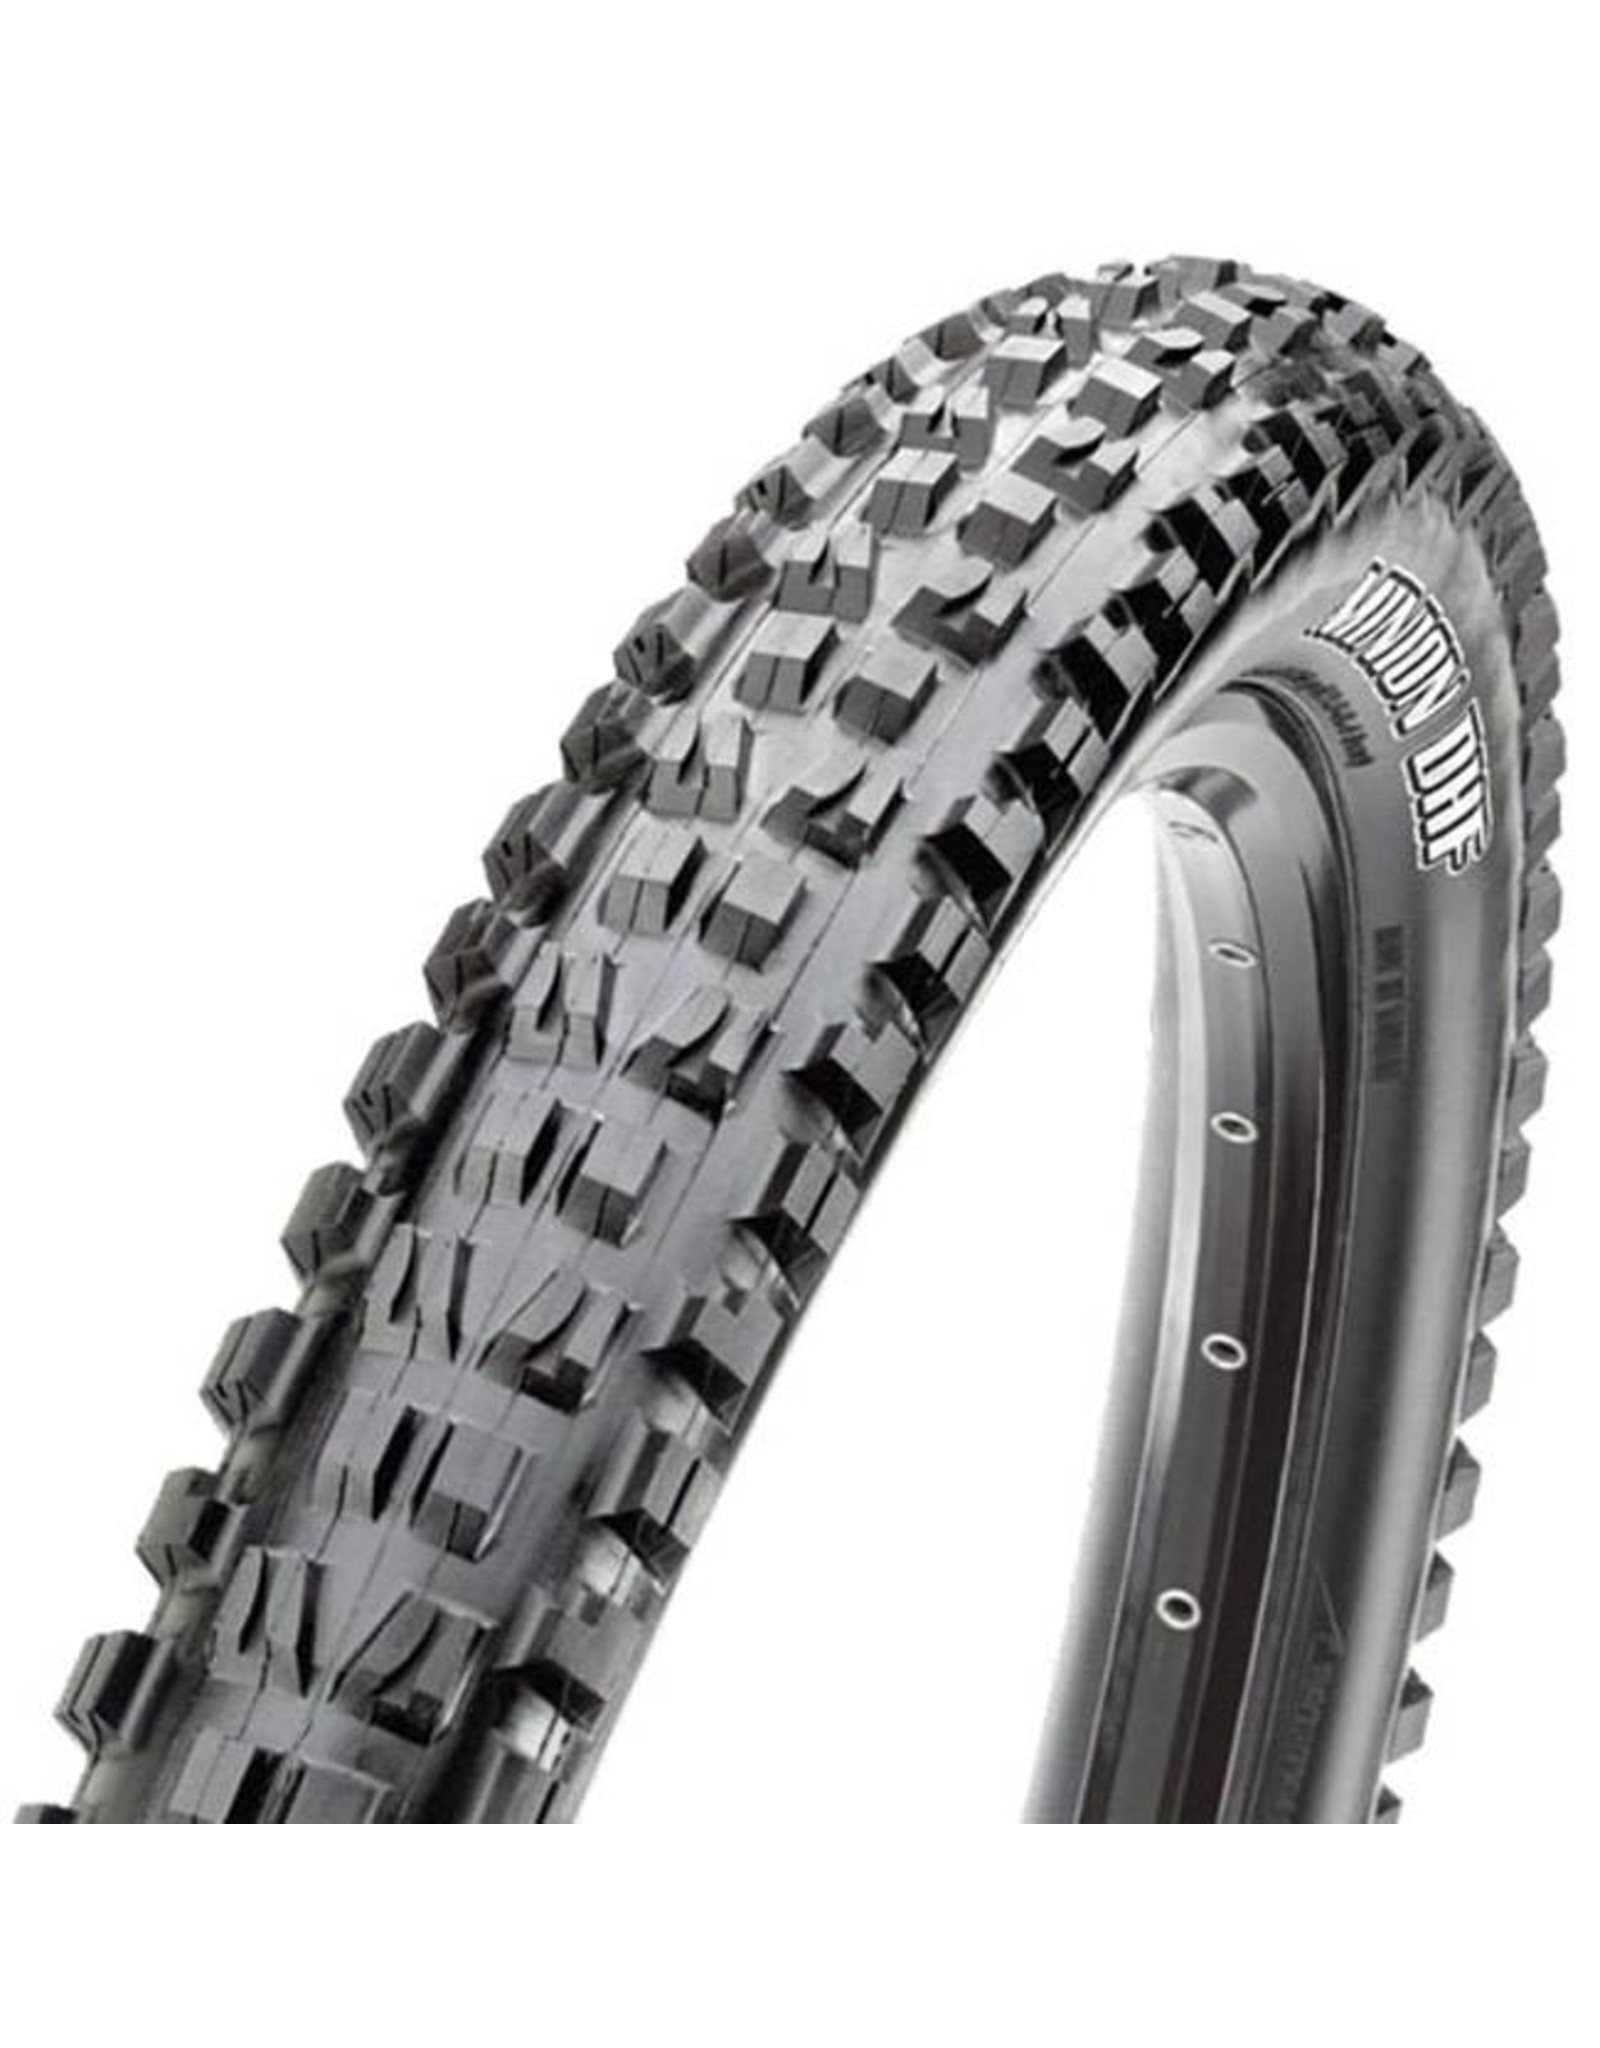 """Maxxis Maxxis Minion DHF Tire: 29 x 2.50"""", Folding, 60tpi, Dual Compound, EXO, Tubeless Ready, Wide Trail, Black"""